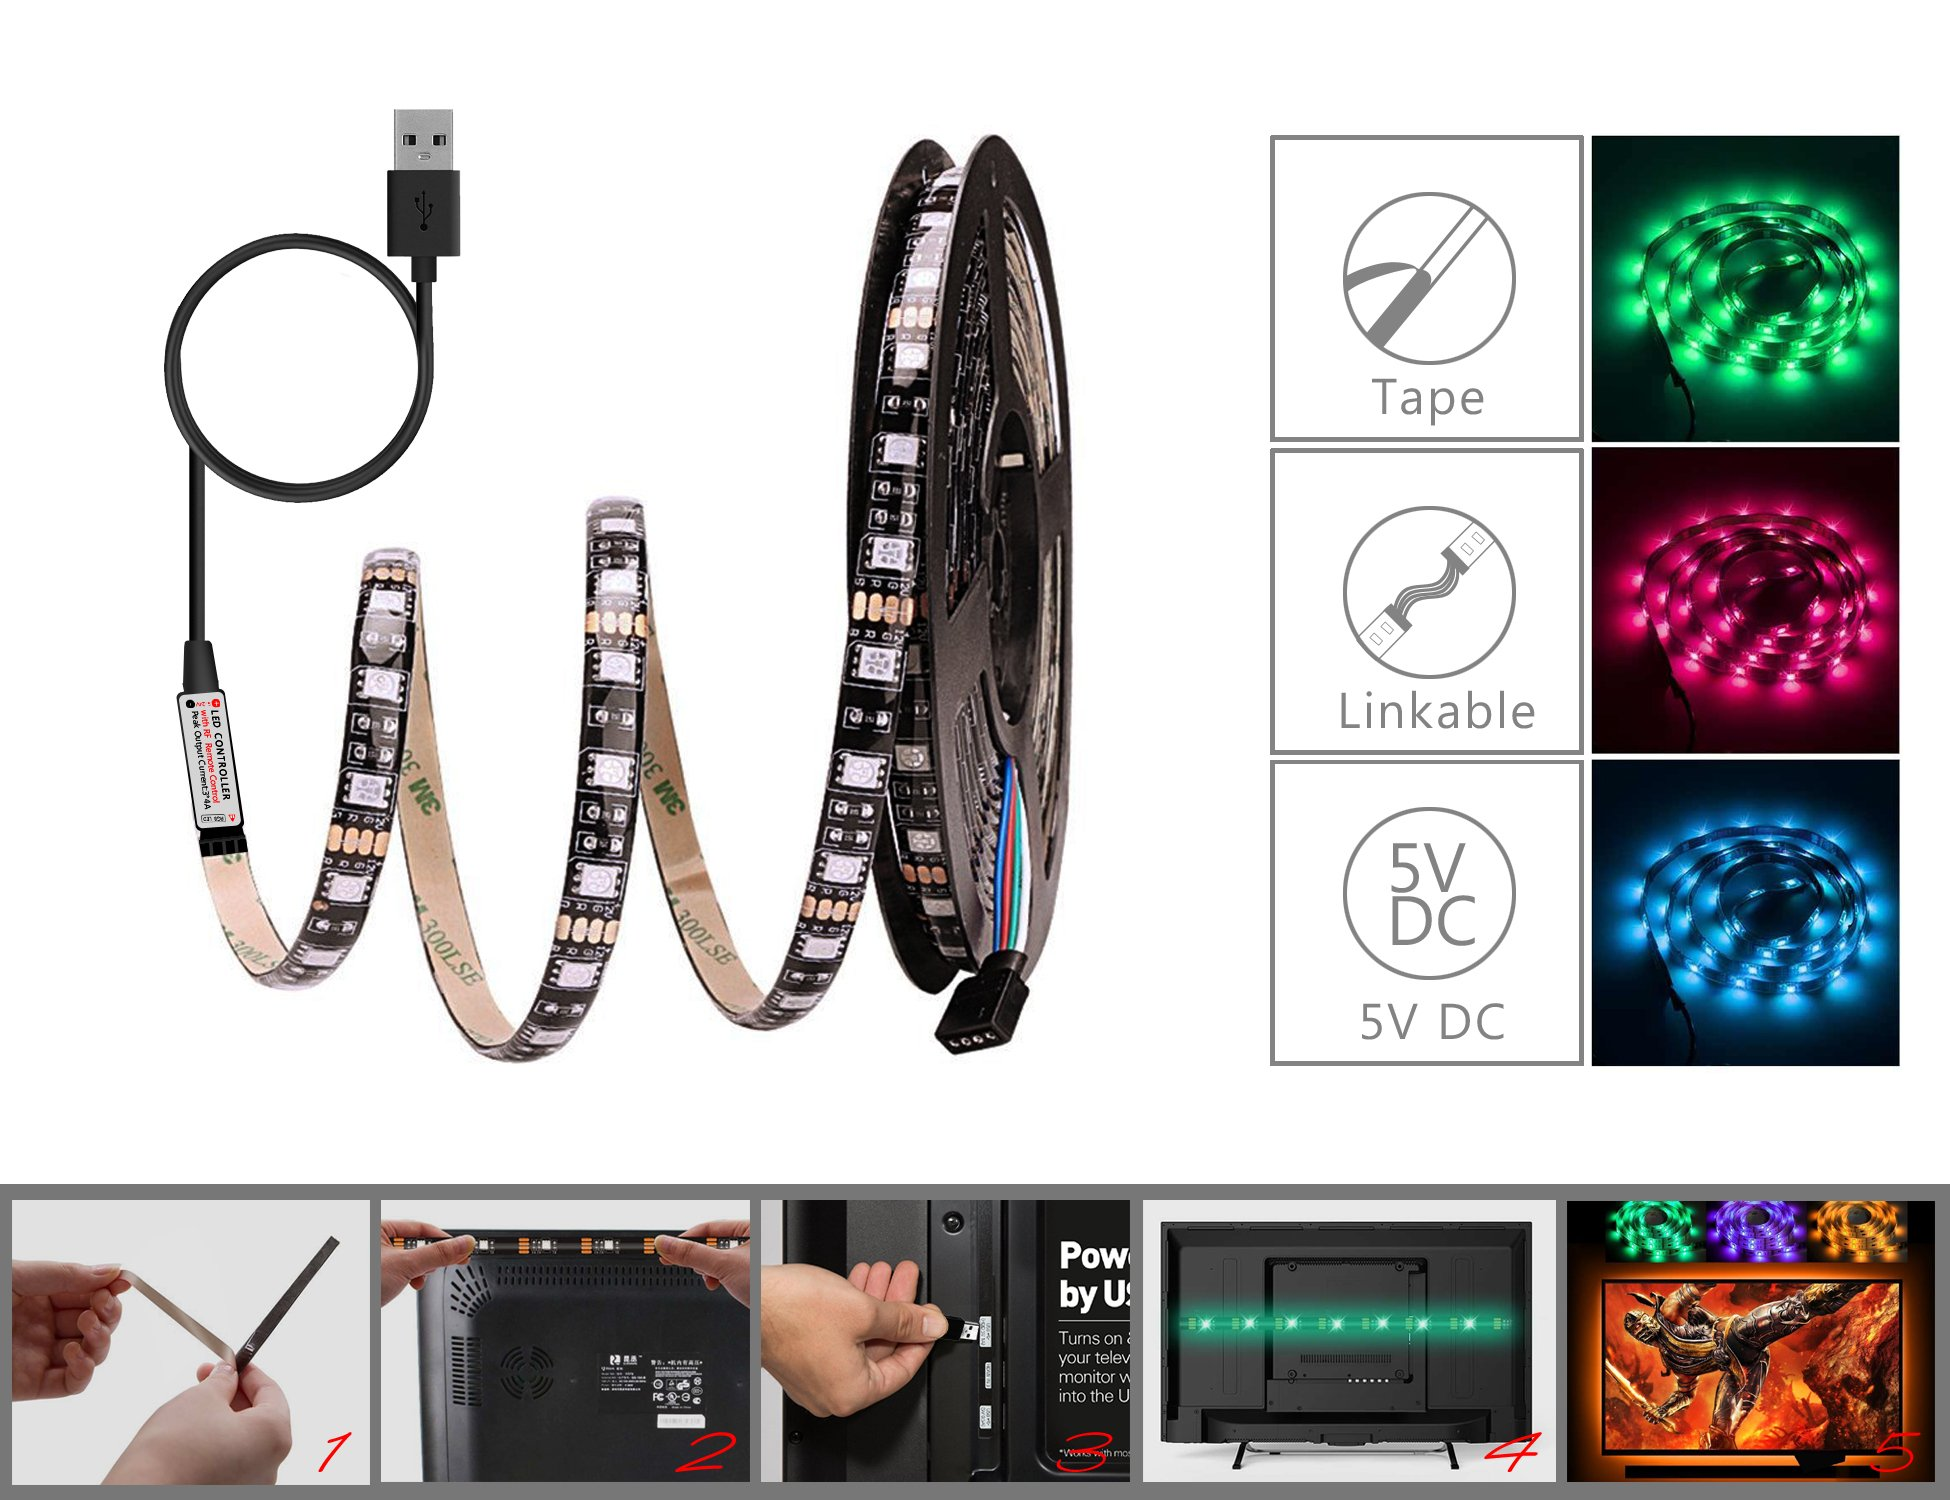 WYNK LED Strip Lights with Remote USB Back Light Fixture DIY 5050RGB Flexible 3.4M 104LED Color Changing Full Kit + 4 Connector + Remote Controller for Computer/TV/Home/Kitchen/Christmas Decorative by WYNK (Image #2)